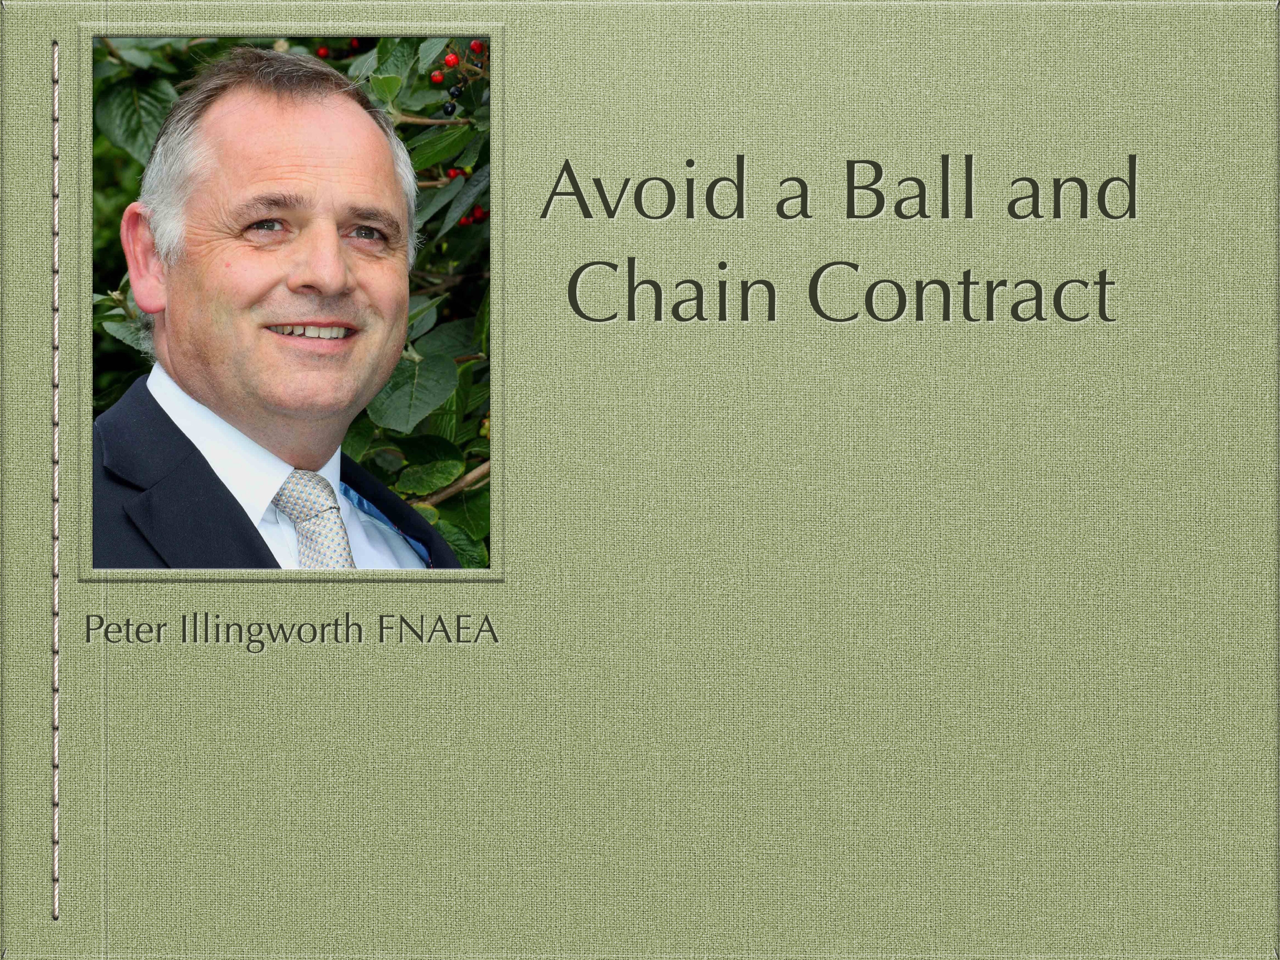 Avoid a Ball and Chain Contract